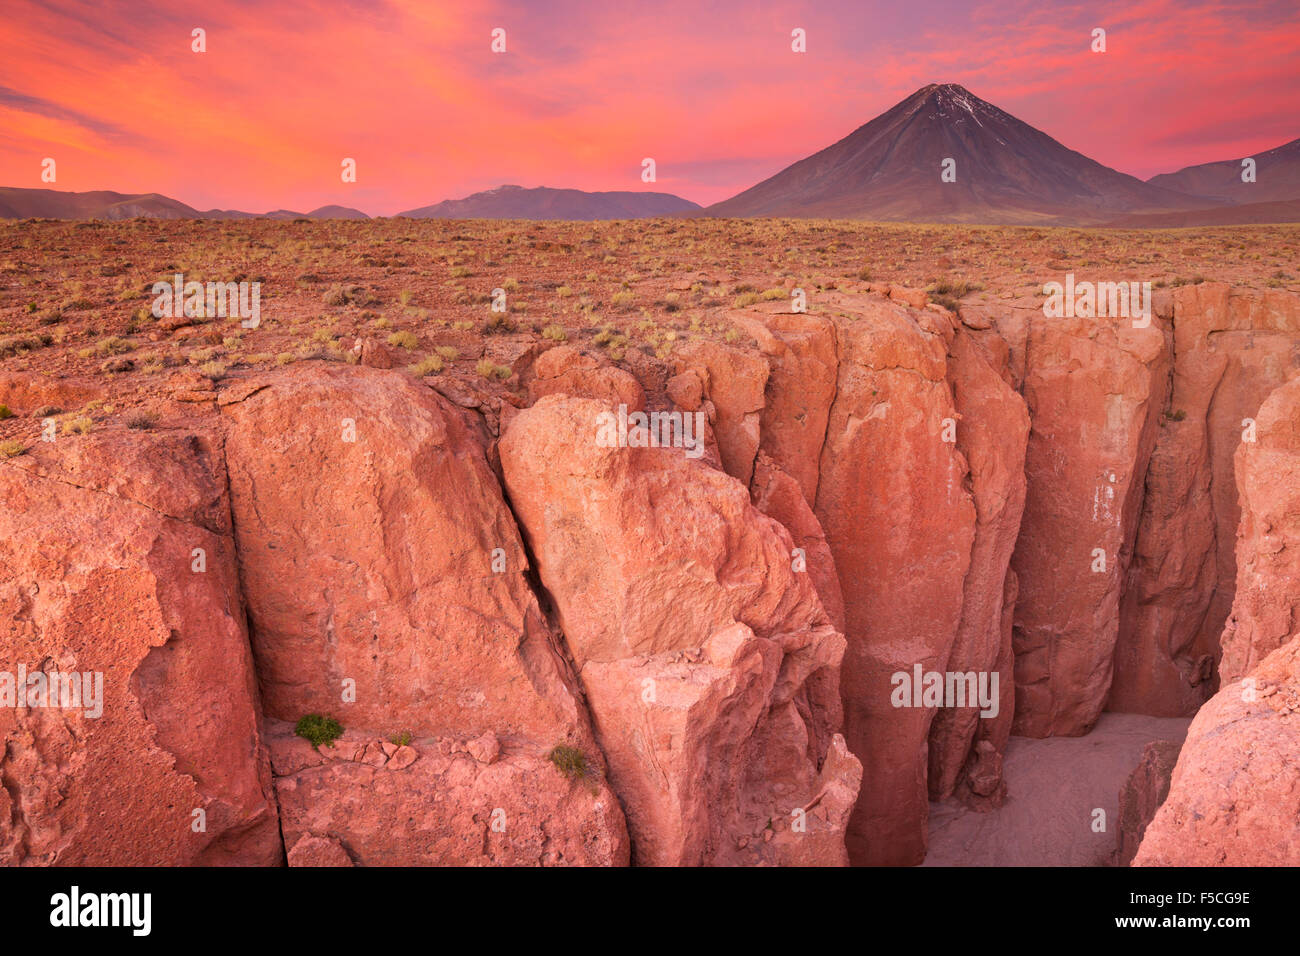 A narrow canyon with a volcano in the distance. Photographed at the foot of Volcan Licancabur in the Atacama Desert, - Stock Image